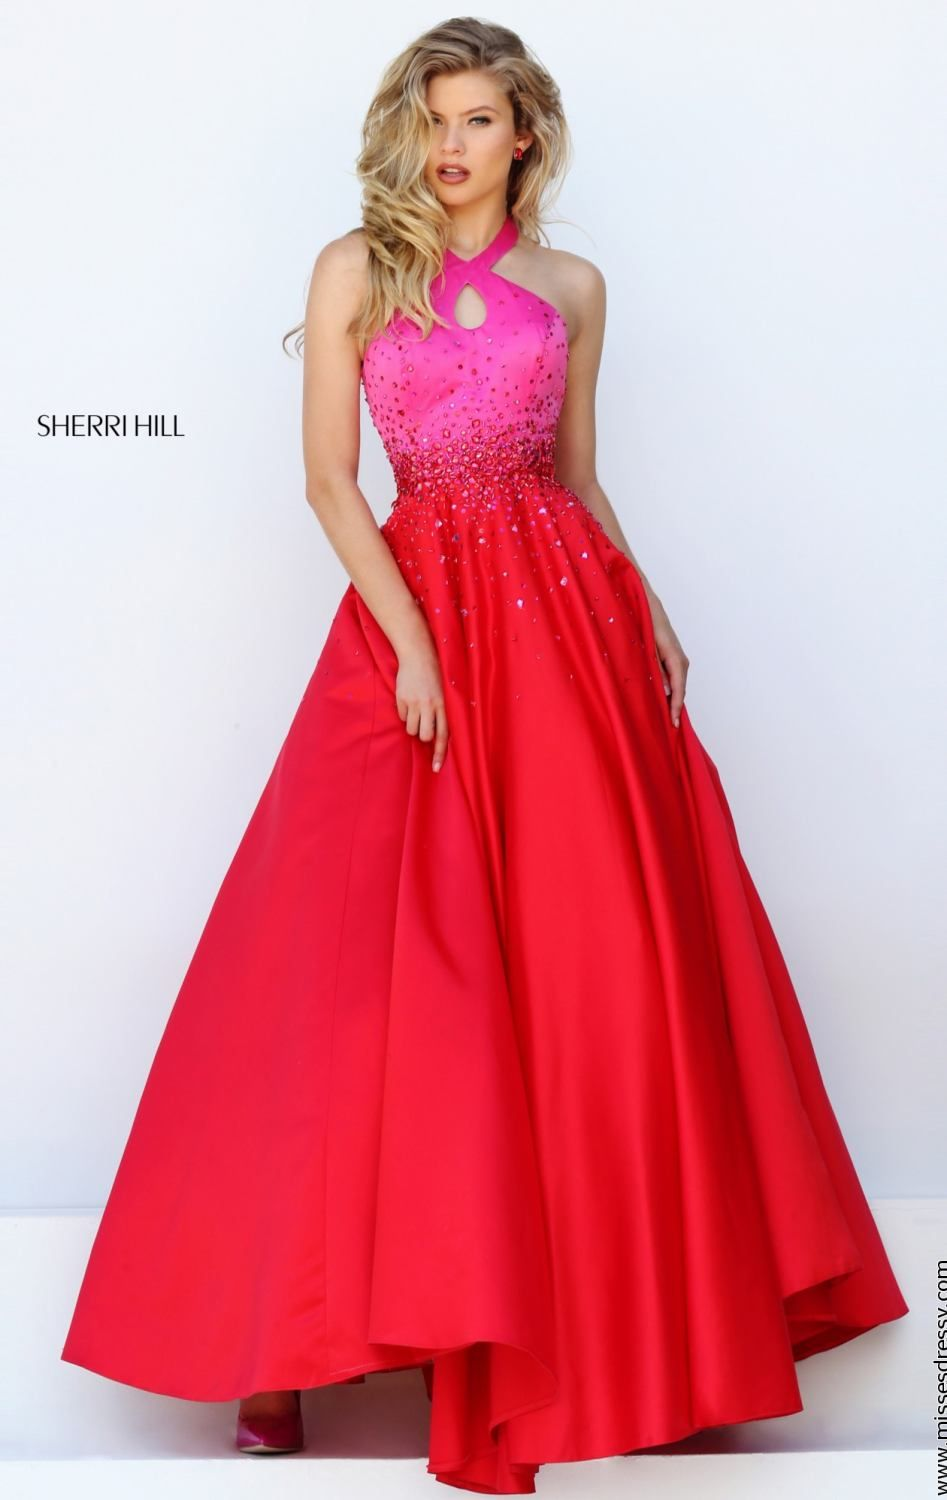 Sherri hill by sherri hill hen night inspo pinterest